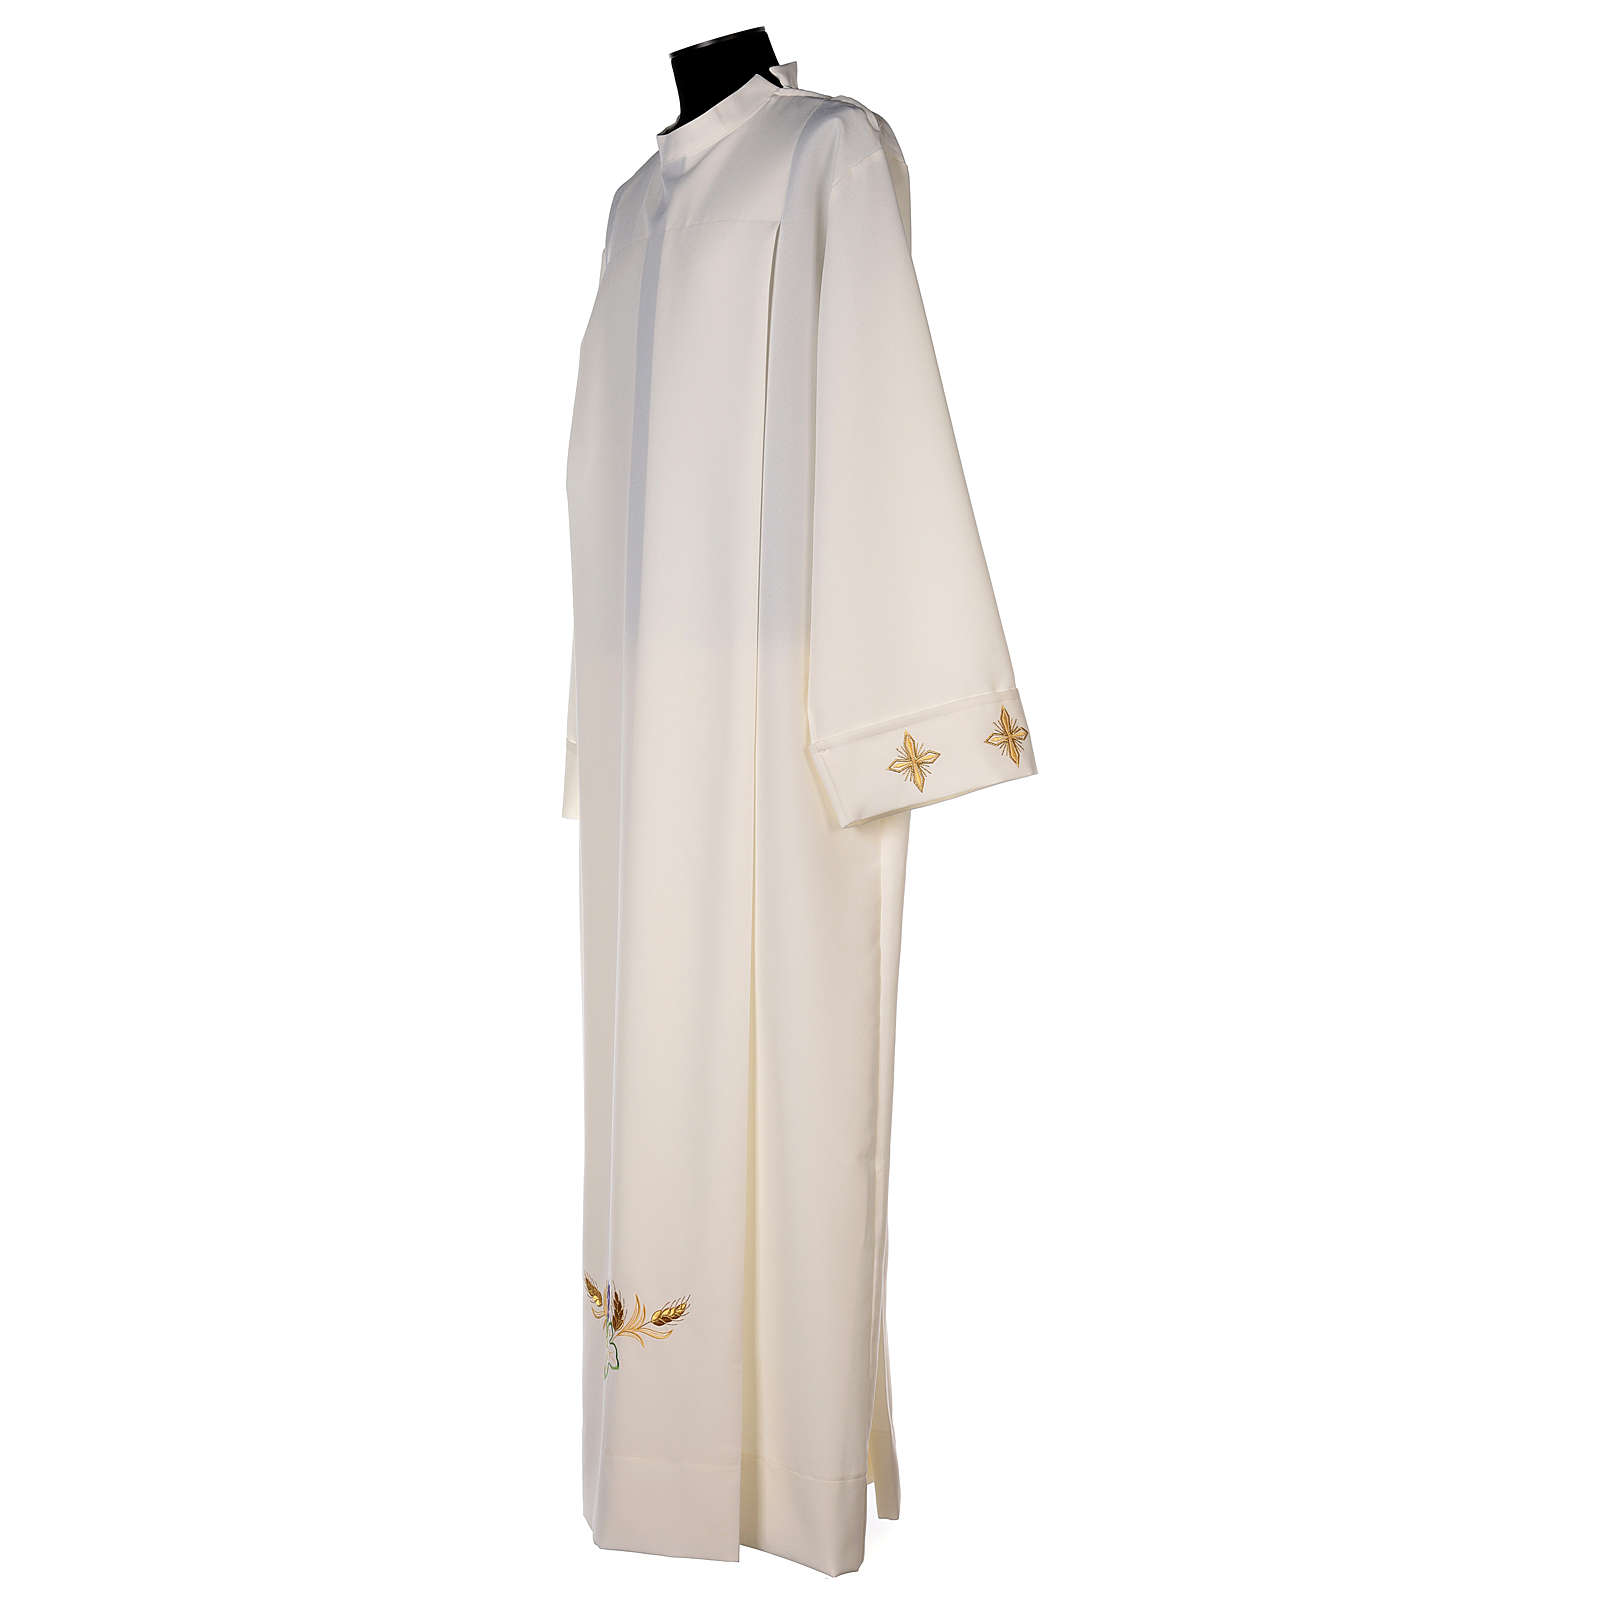 Ivory alb in polyester with cross, wheat and grapes embroideries 4